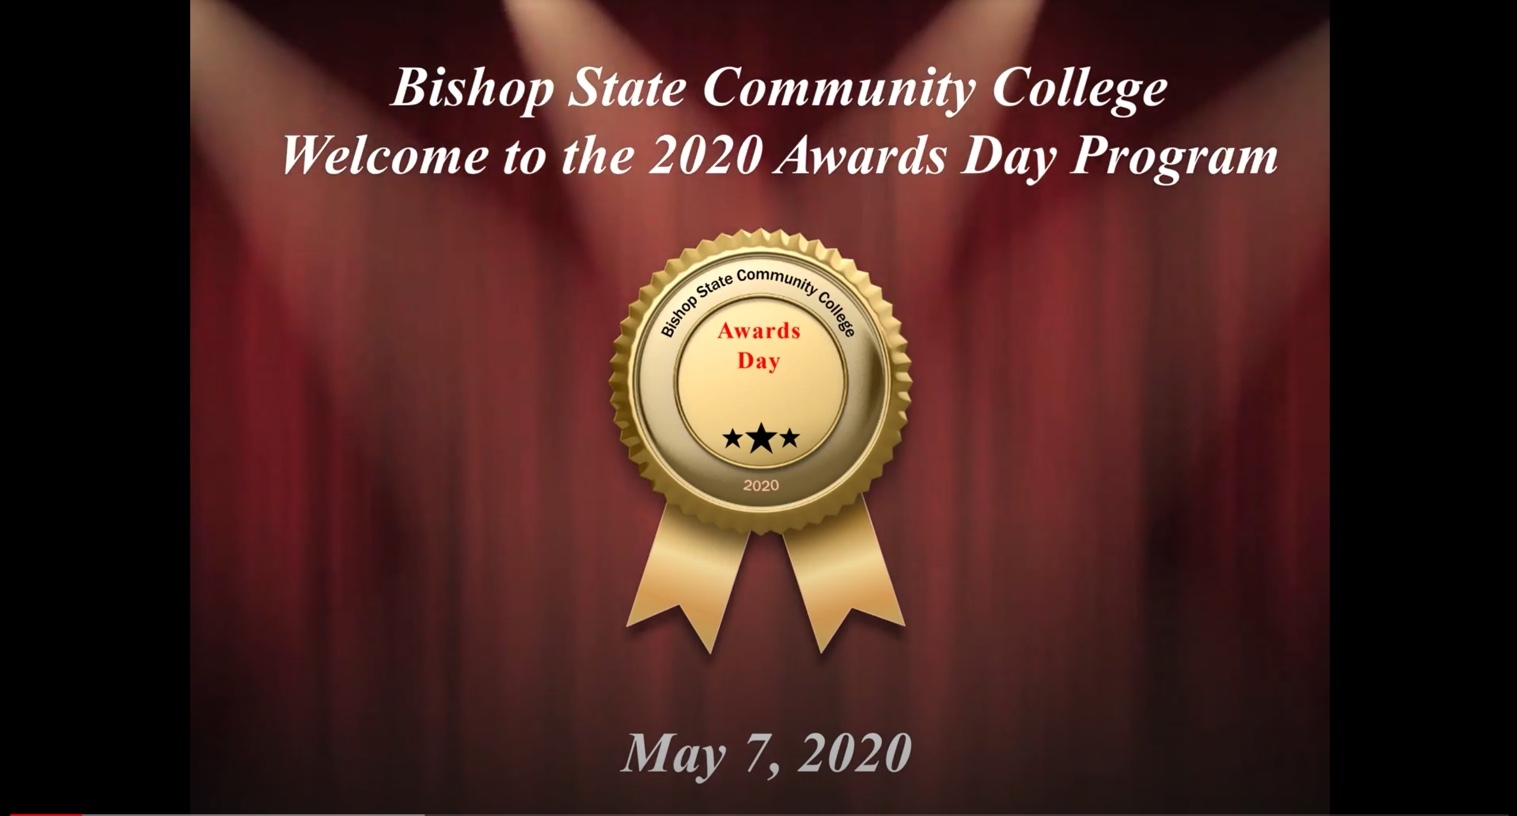 2020 Awards Day Image